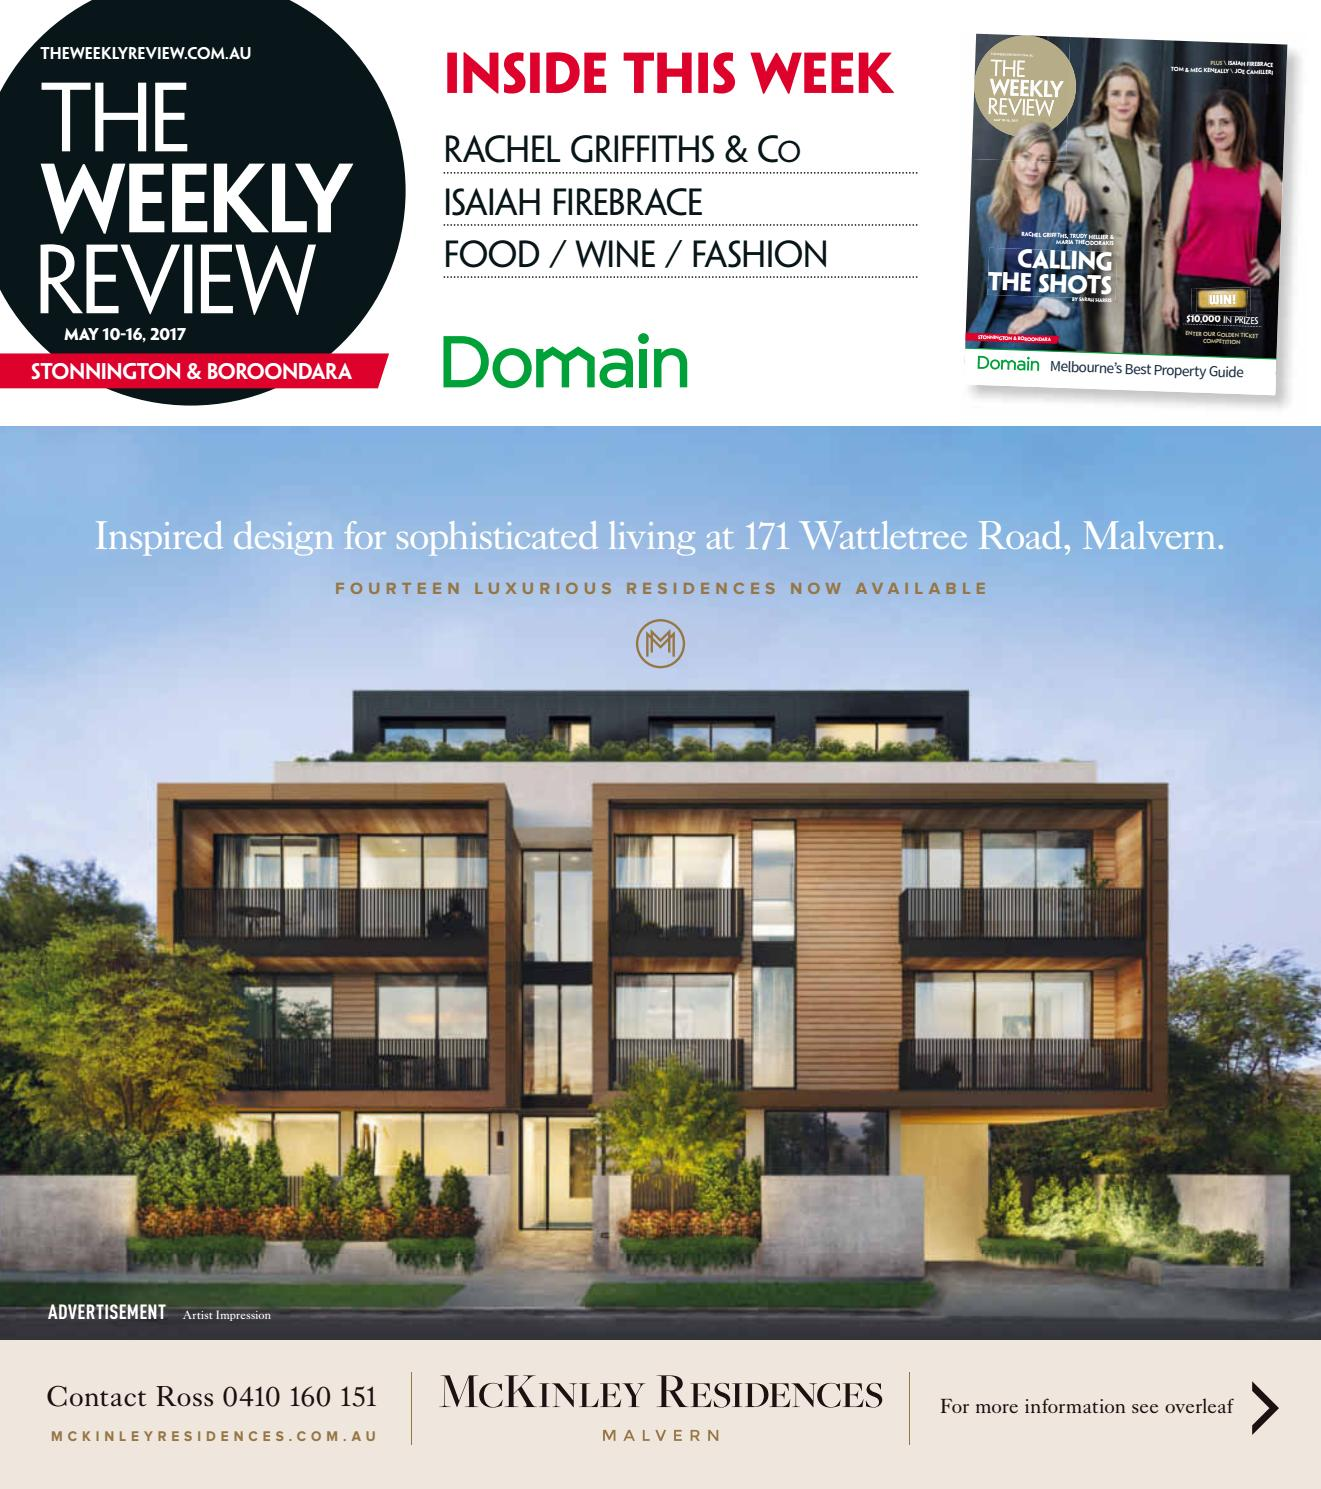 education gt see more electrical wiring residential sc by ray c multhe weekly review stonnington \\u0026 boroondara by the weekly review issuu education gt see more electrical wiring residential sc by ray c mul postmedia